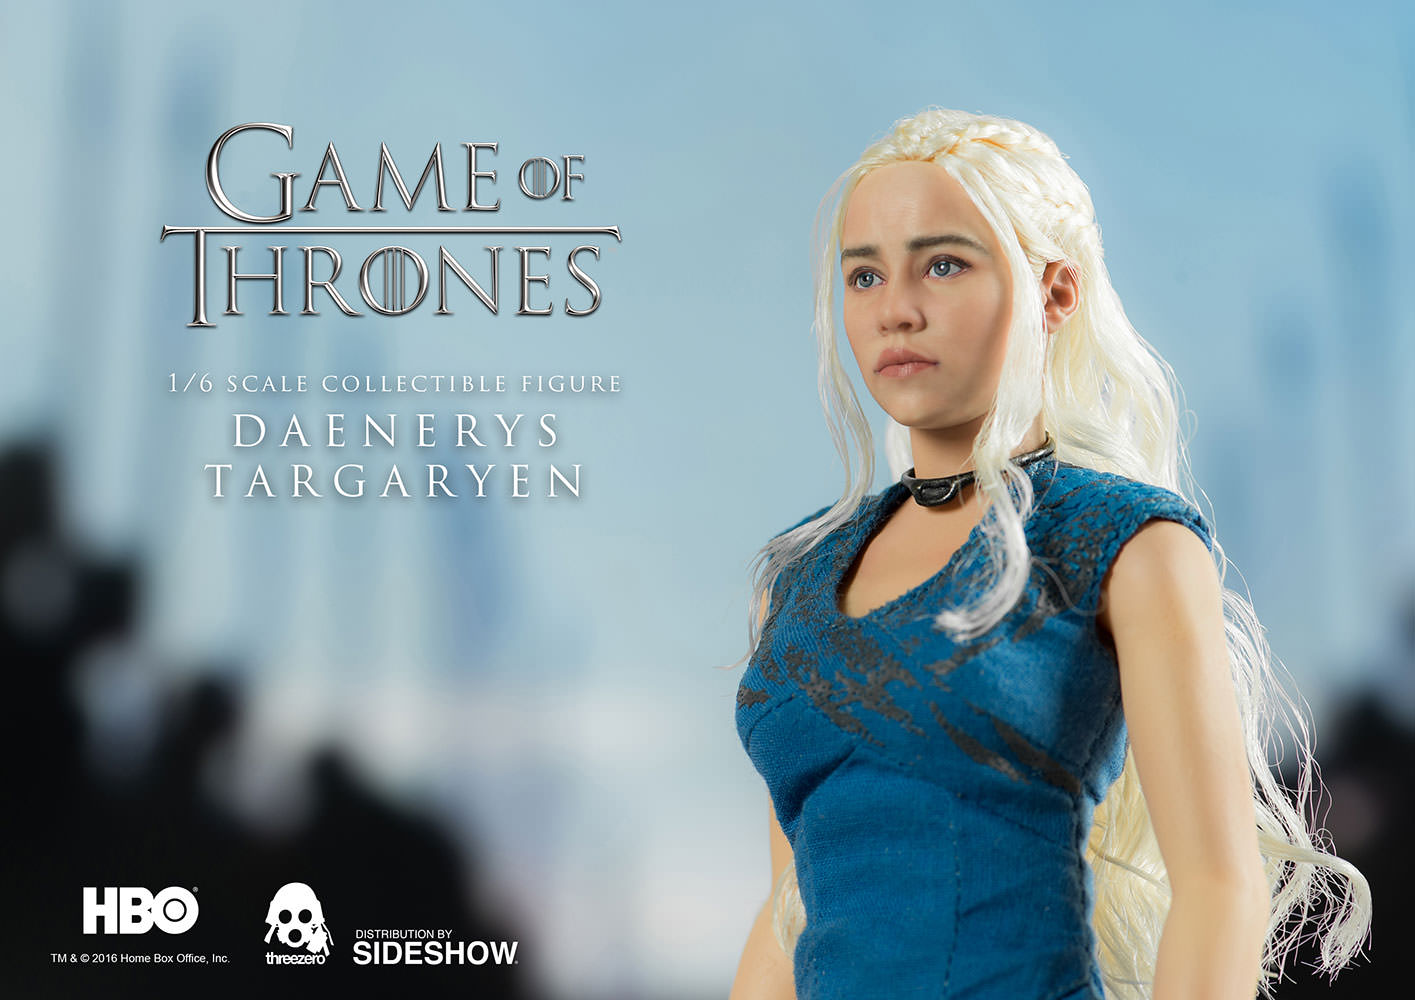 game-of-thrones-daenerys-targaryen-sixth-scale-figure-threezero-902928-13 Figurine - Game of Thrones - Daenerys